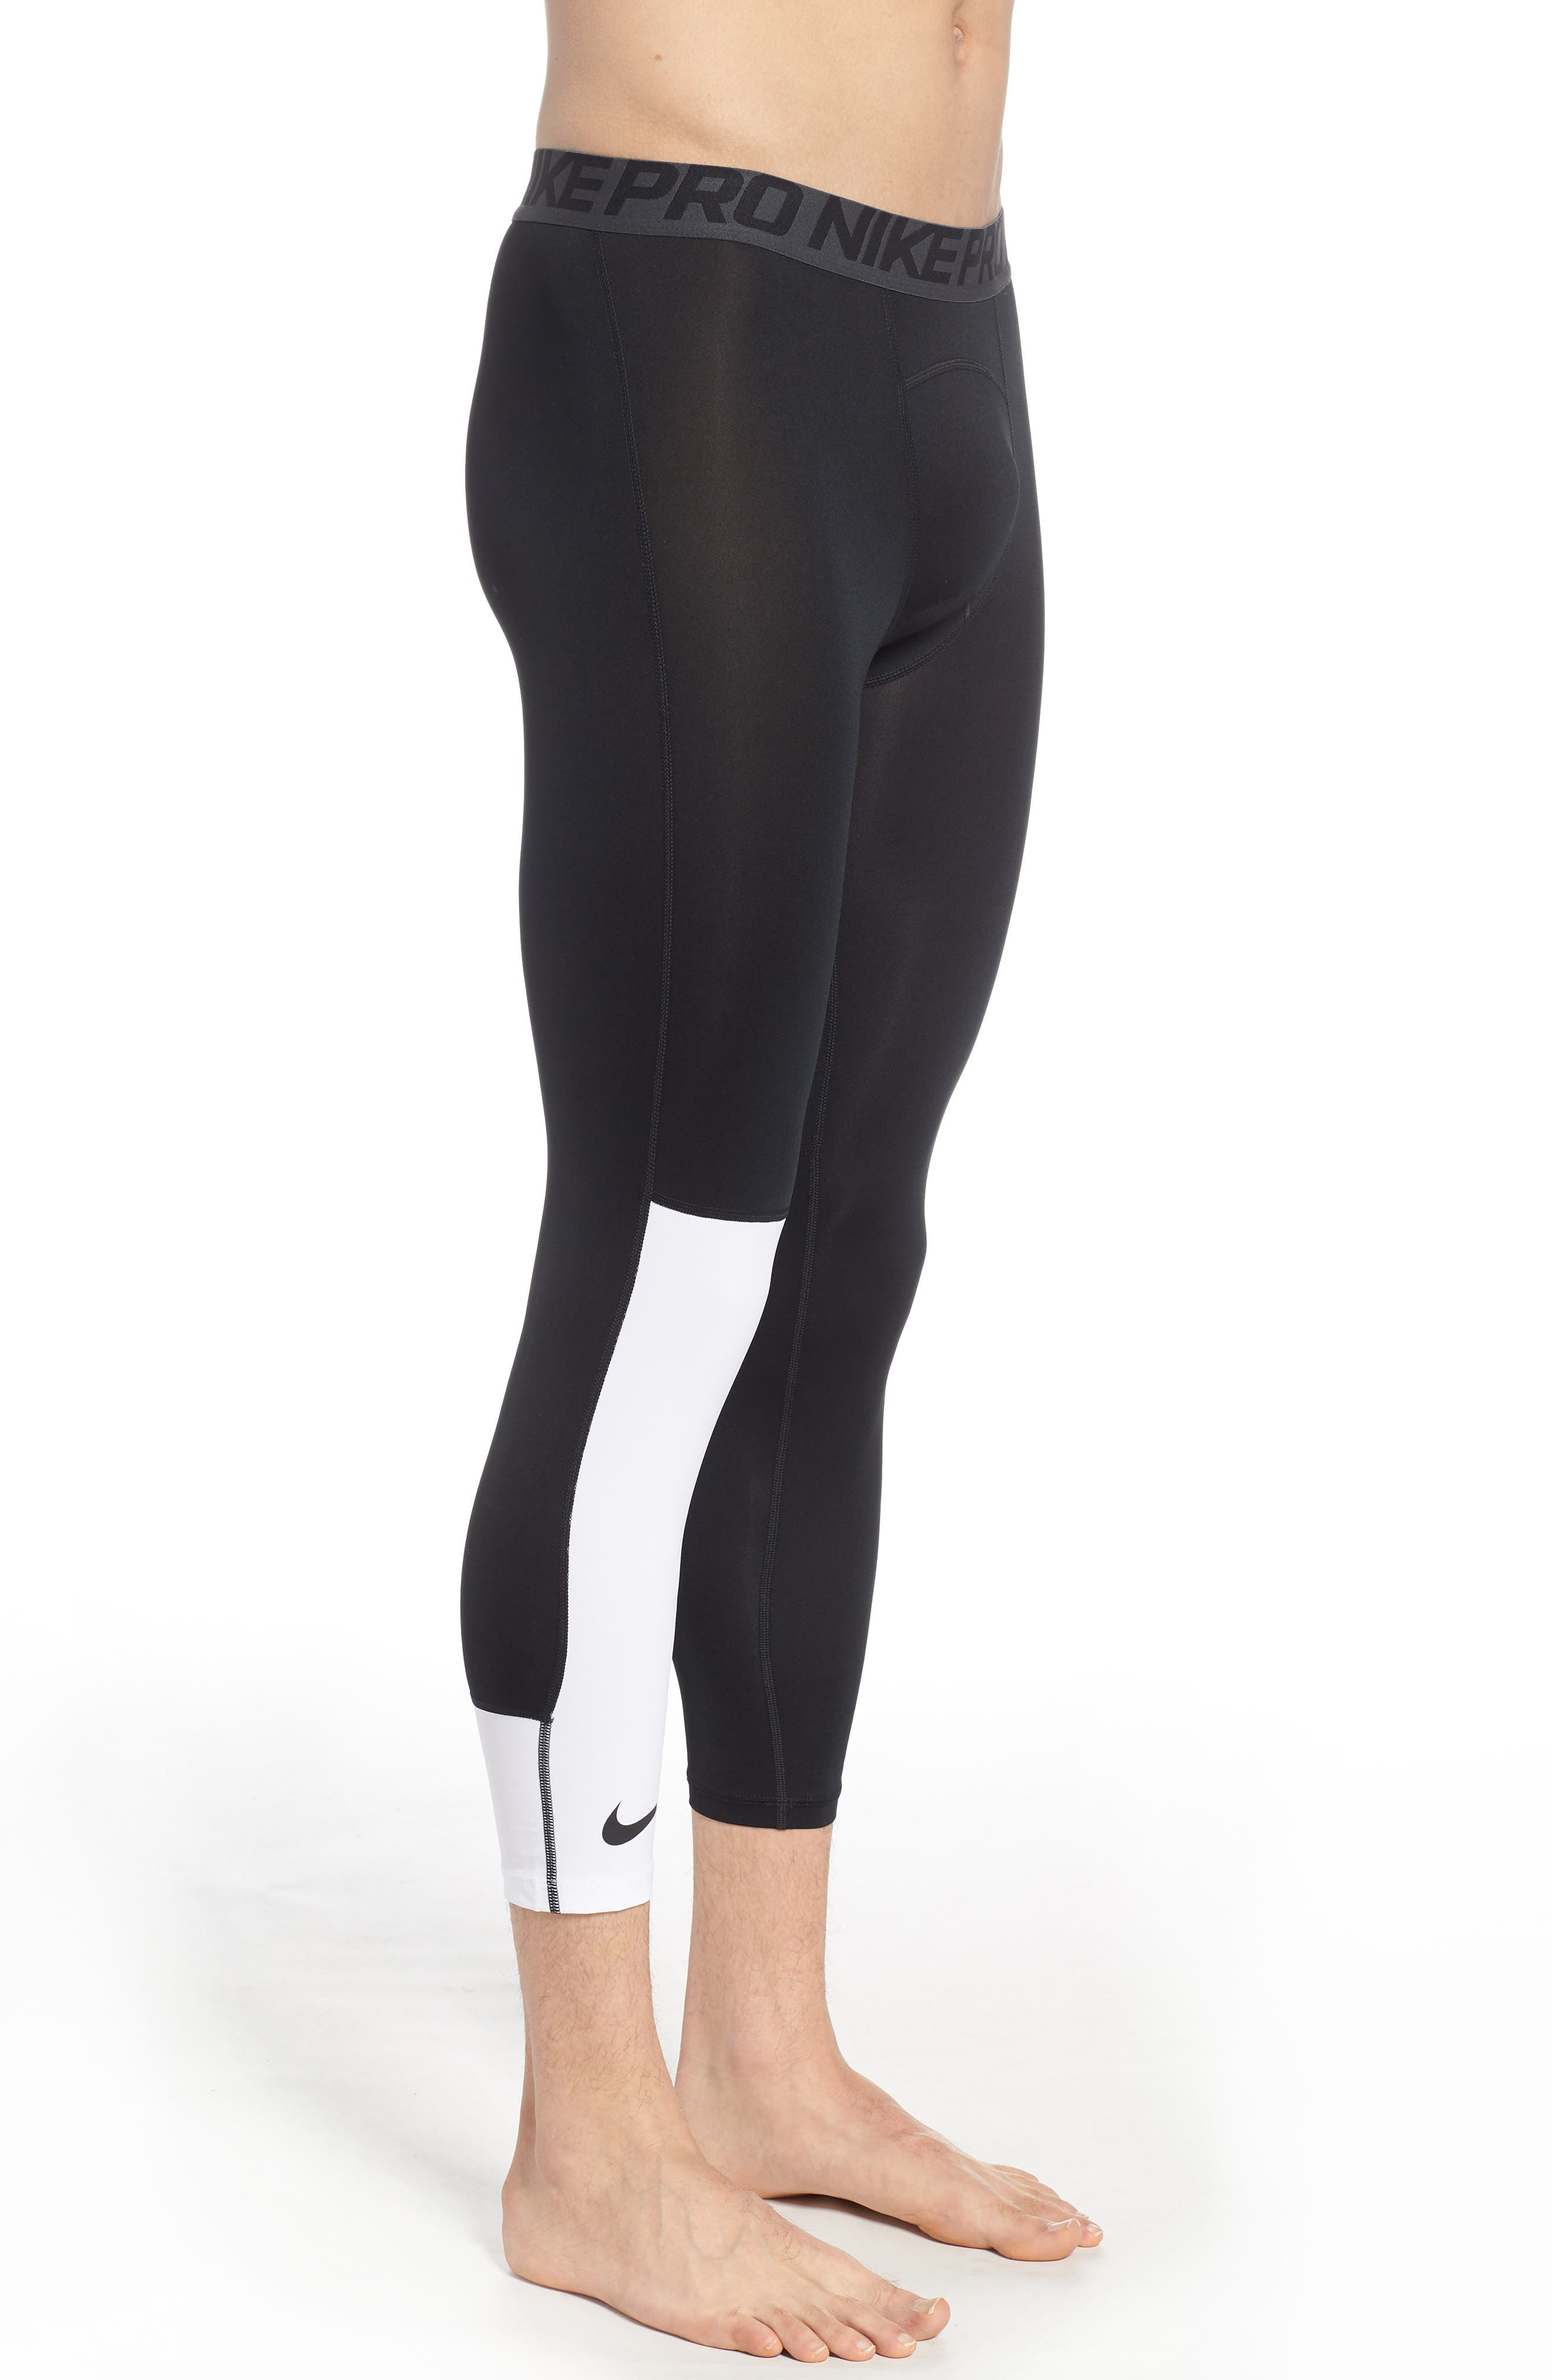 NP Running Tights,                             Alternate thumbnail 3, color,                             010